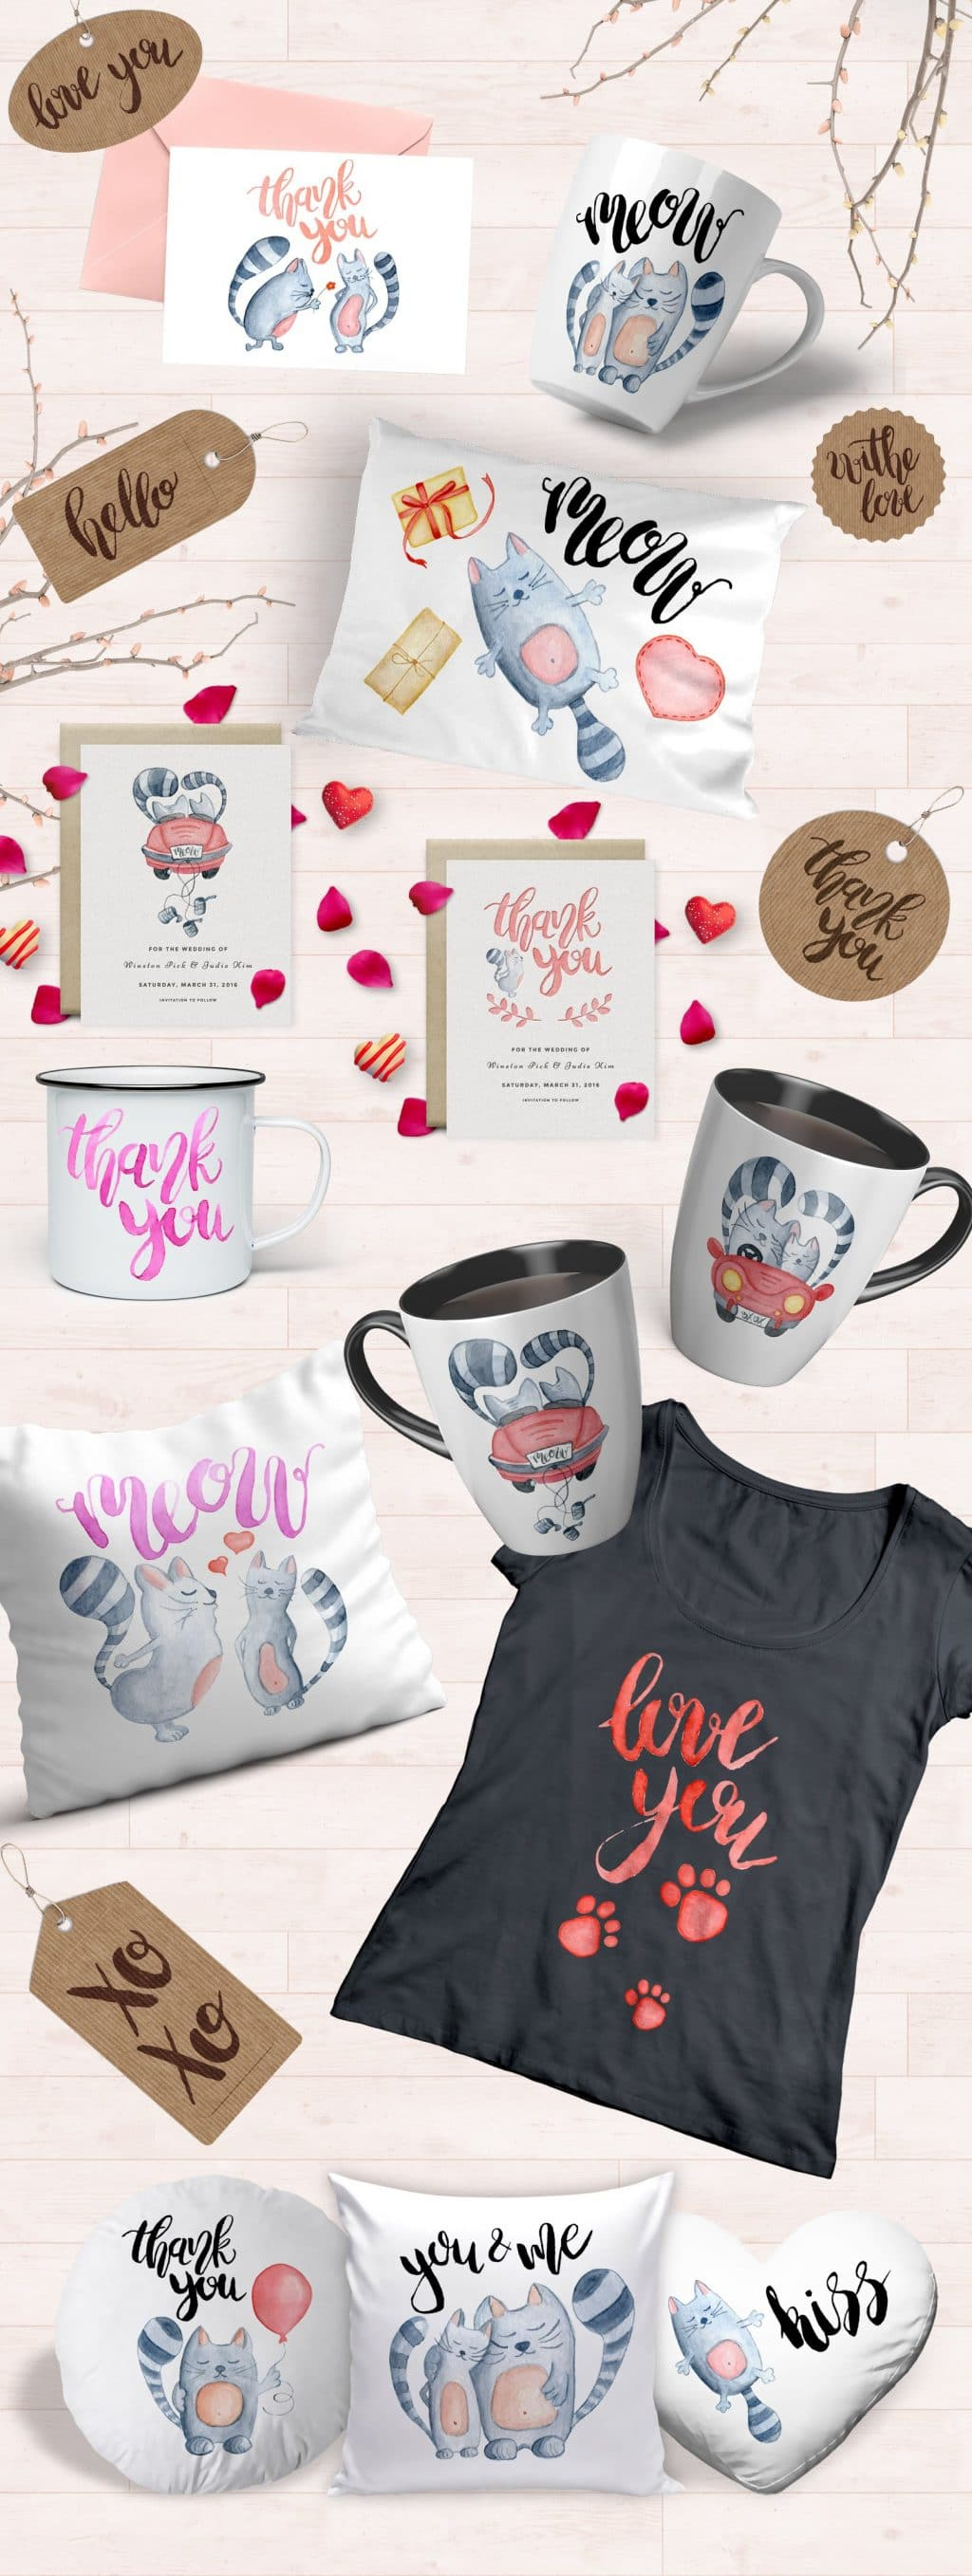 Watercolor Love Сats Сollection